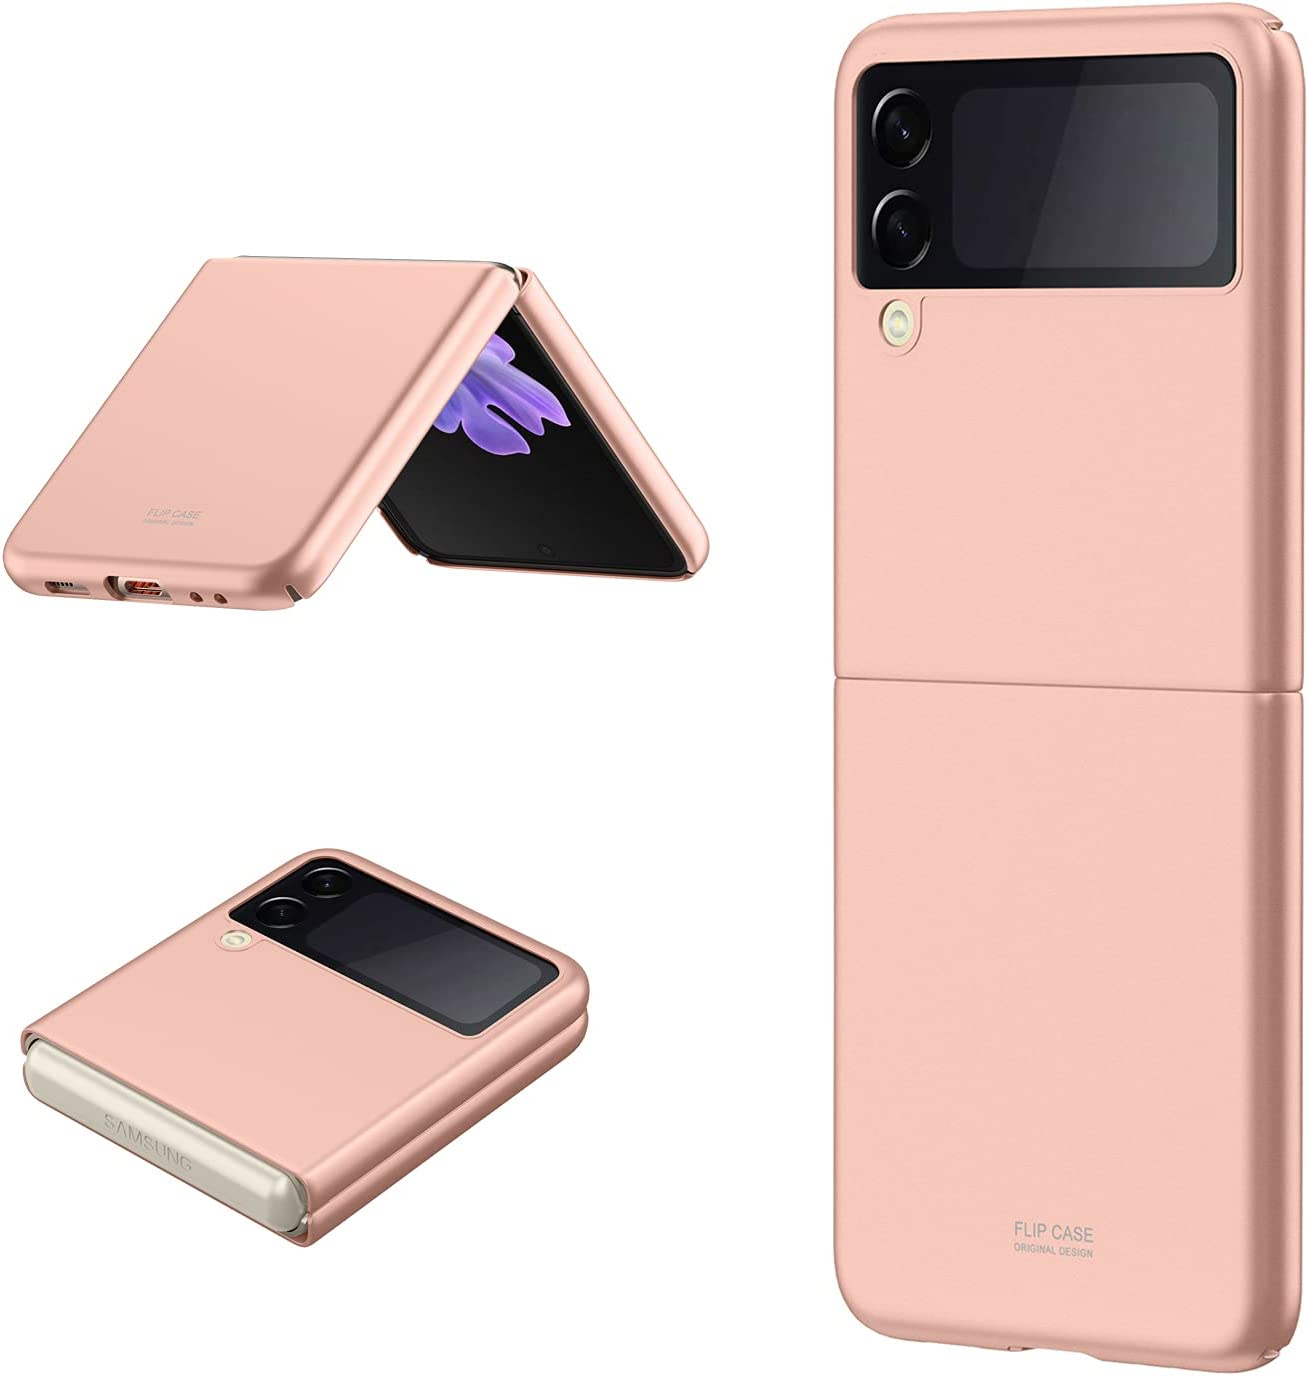 Galaxy Z Flip 3 Case, Back Cover Protector Case Skin Feel Matte PC Cover Compatible with Samsung Galaxy Z Flip 3 5G (Rose Gold)